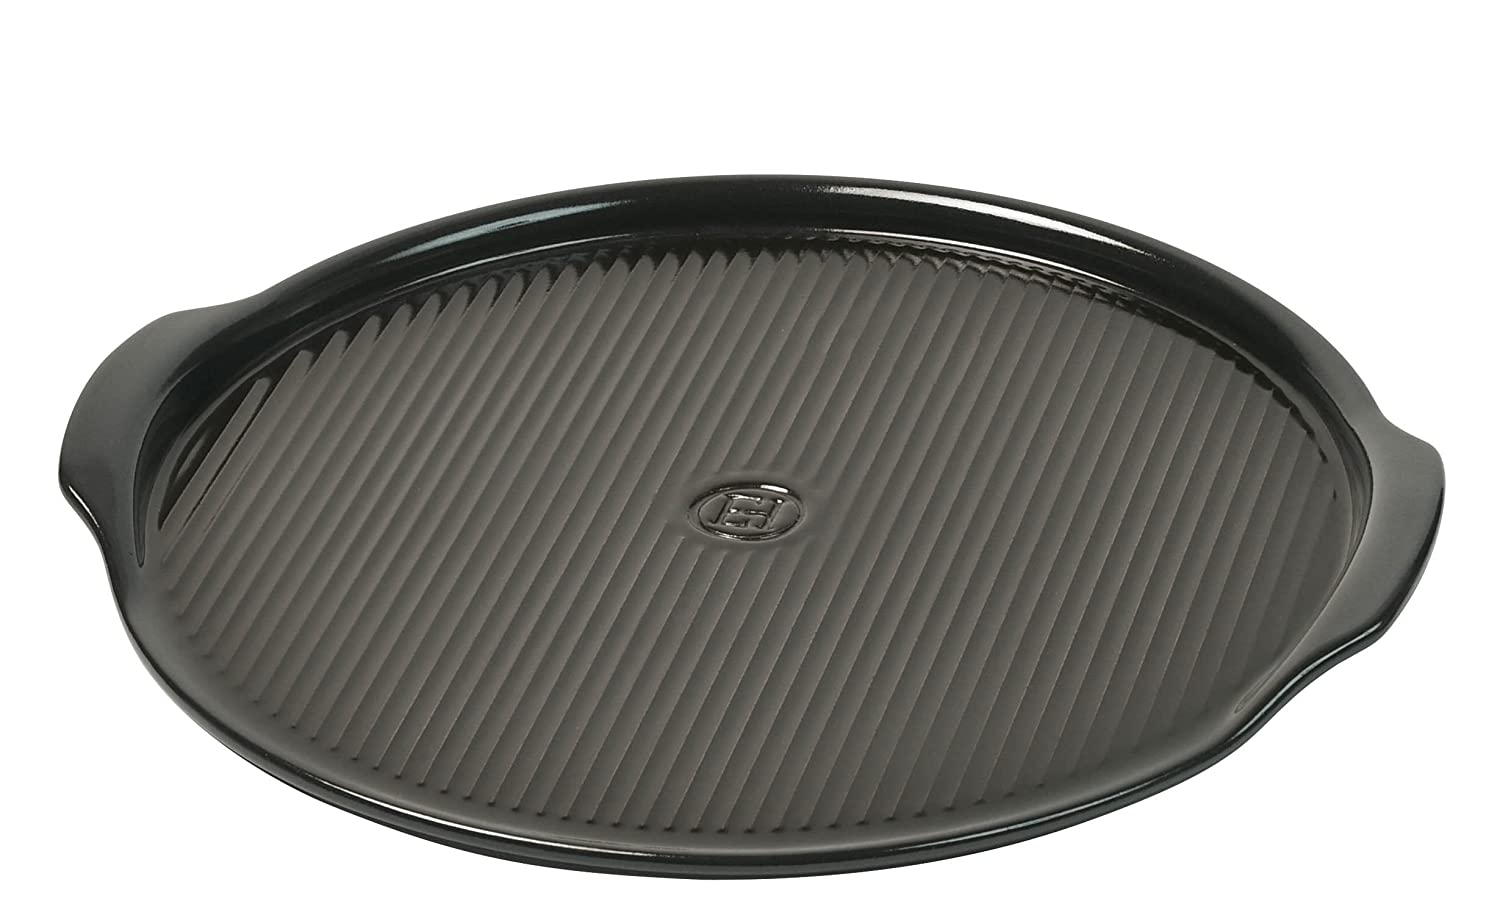 "Emile Henry Made In France Flame Pizza Stone, 14.6 x 14.6"", Charcoal"